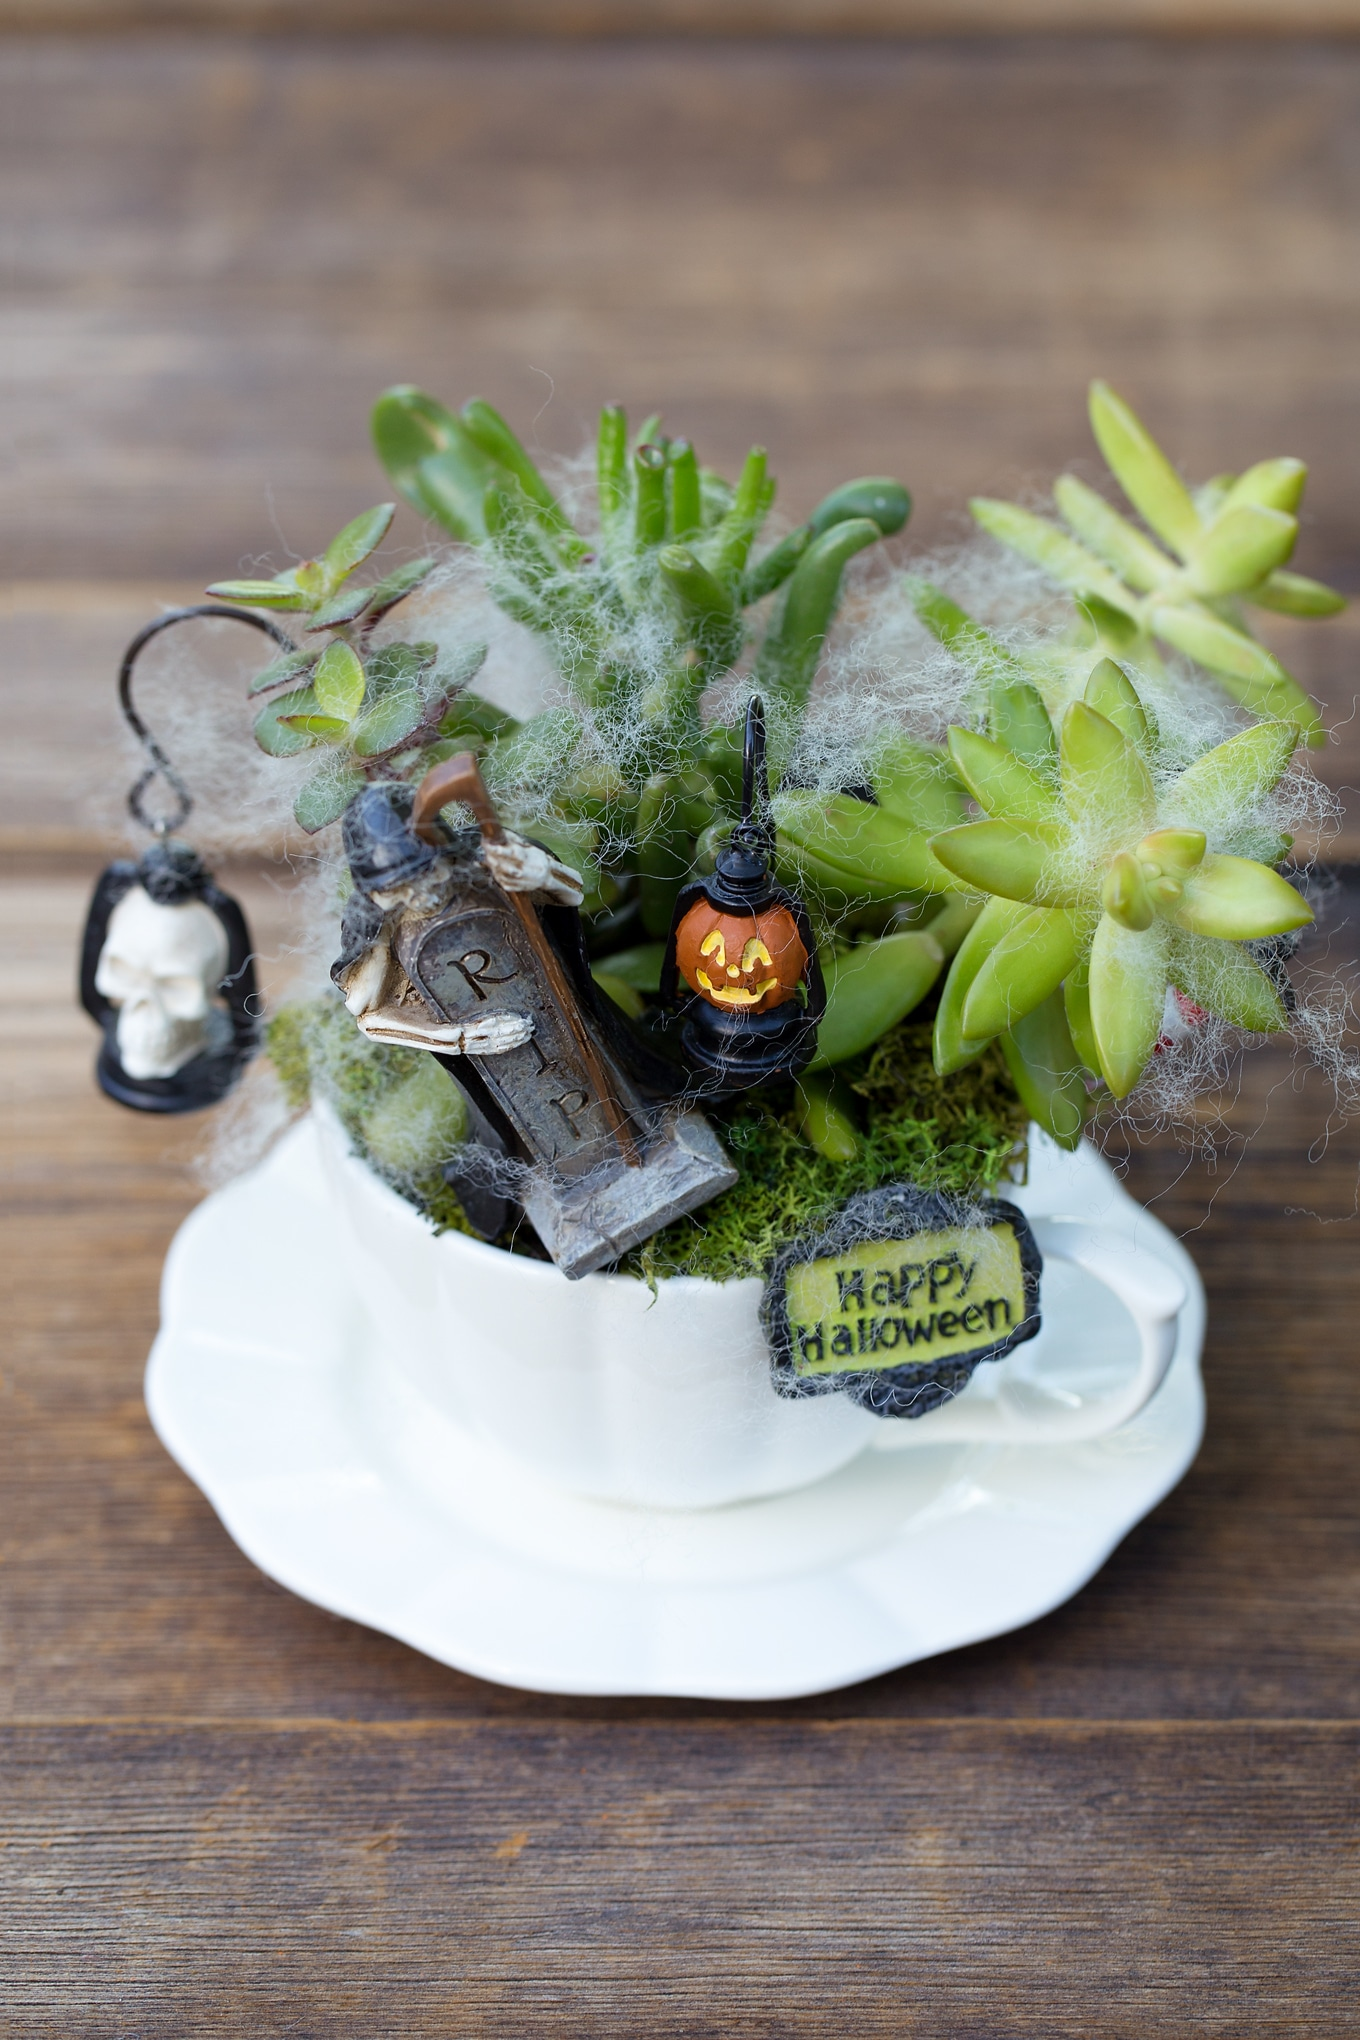 How to Make a Halloween Teacup Garden Craft